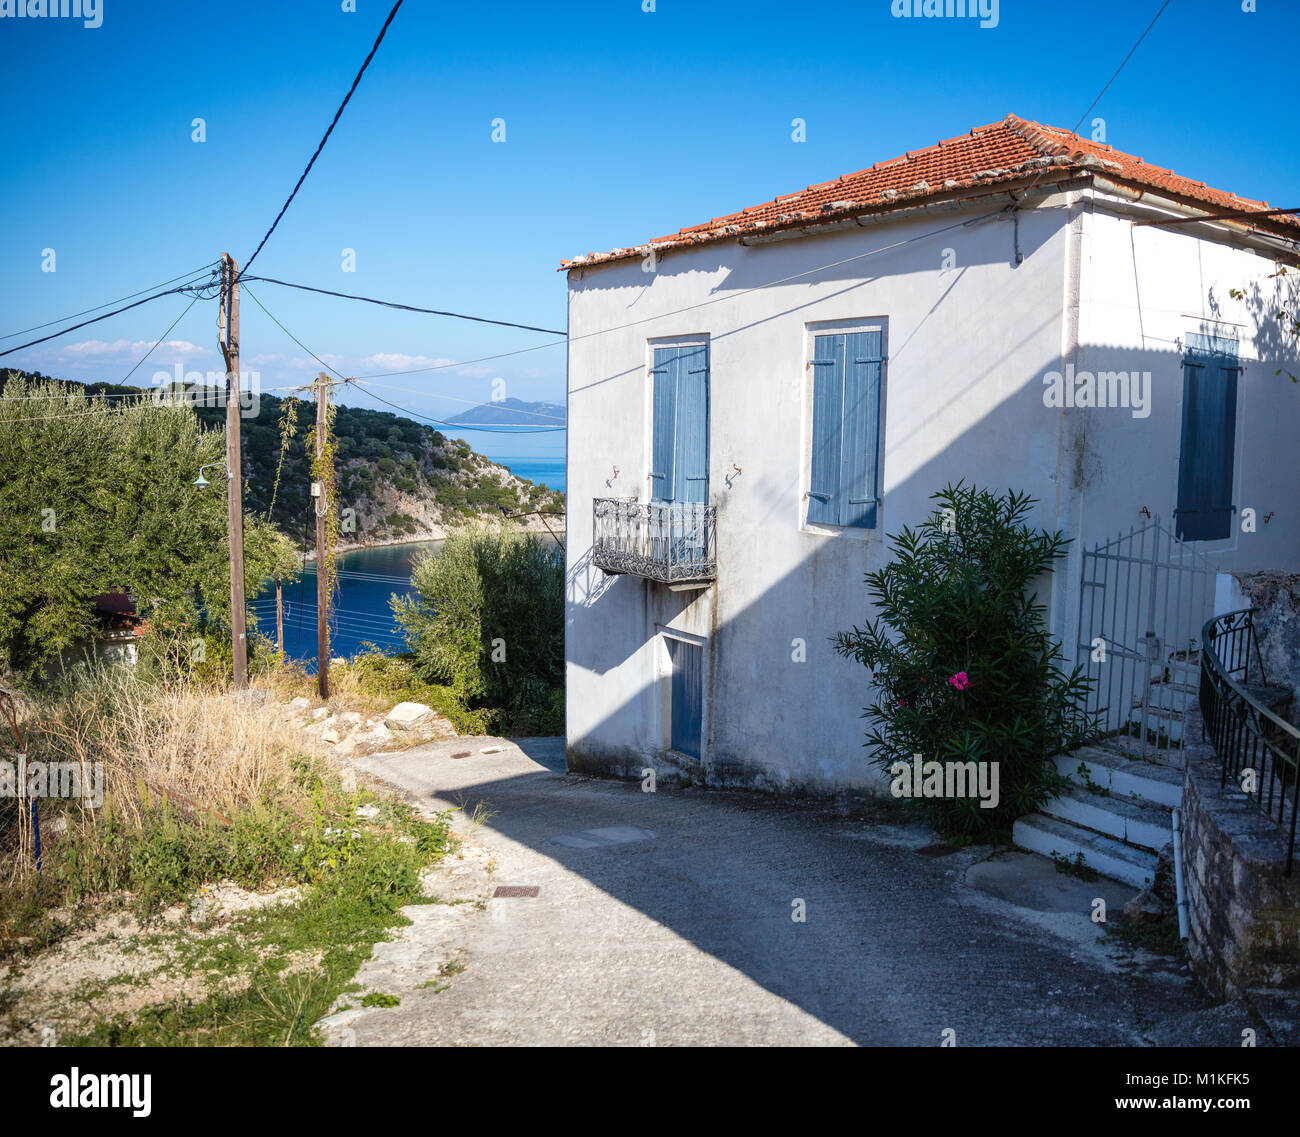 White painted villa with blue shutters in the small fishing village of Kioni in the Greek Ionian Islands - Stock Image